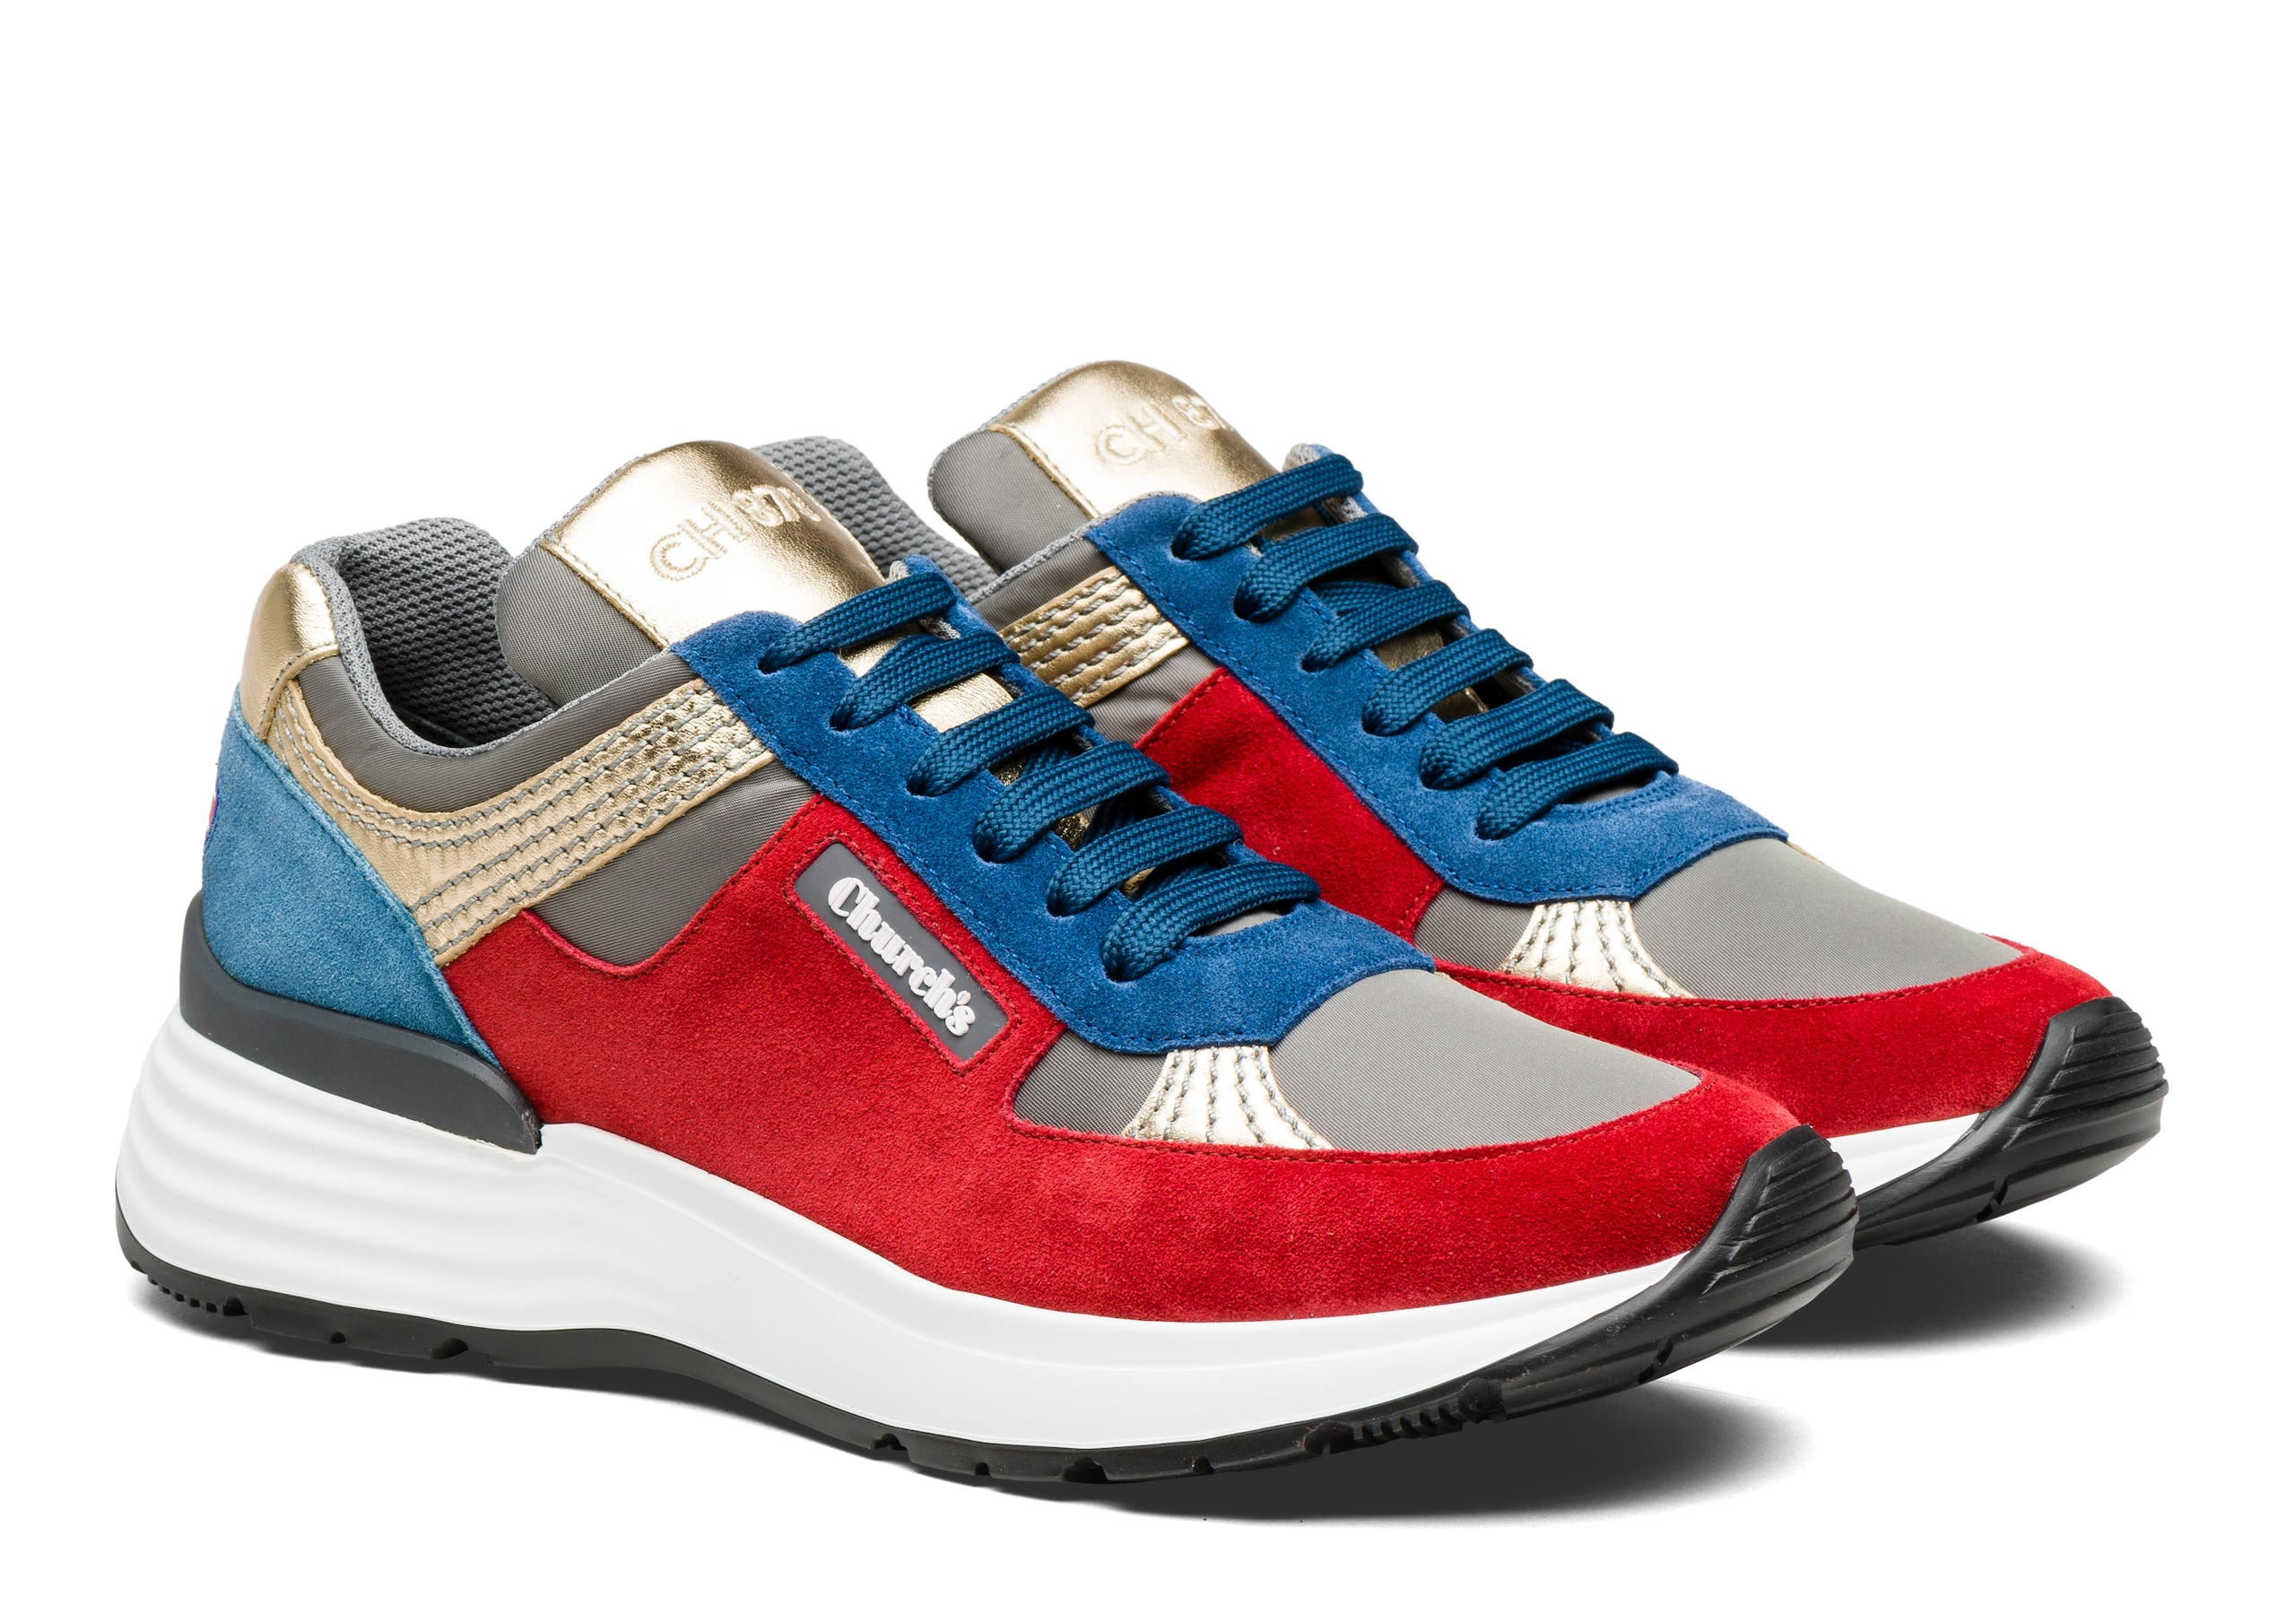 Ch873 Church's Suede Tech & Metallic Retro Sneaker Red